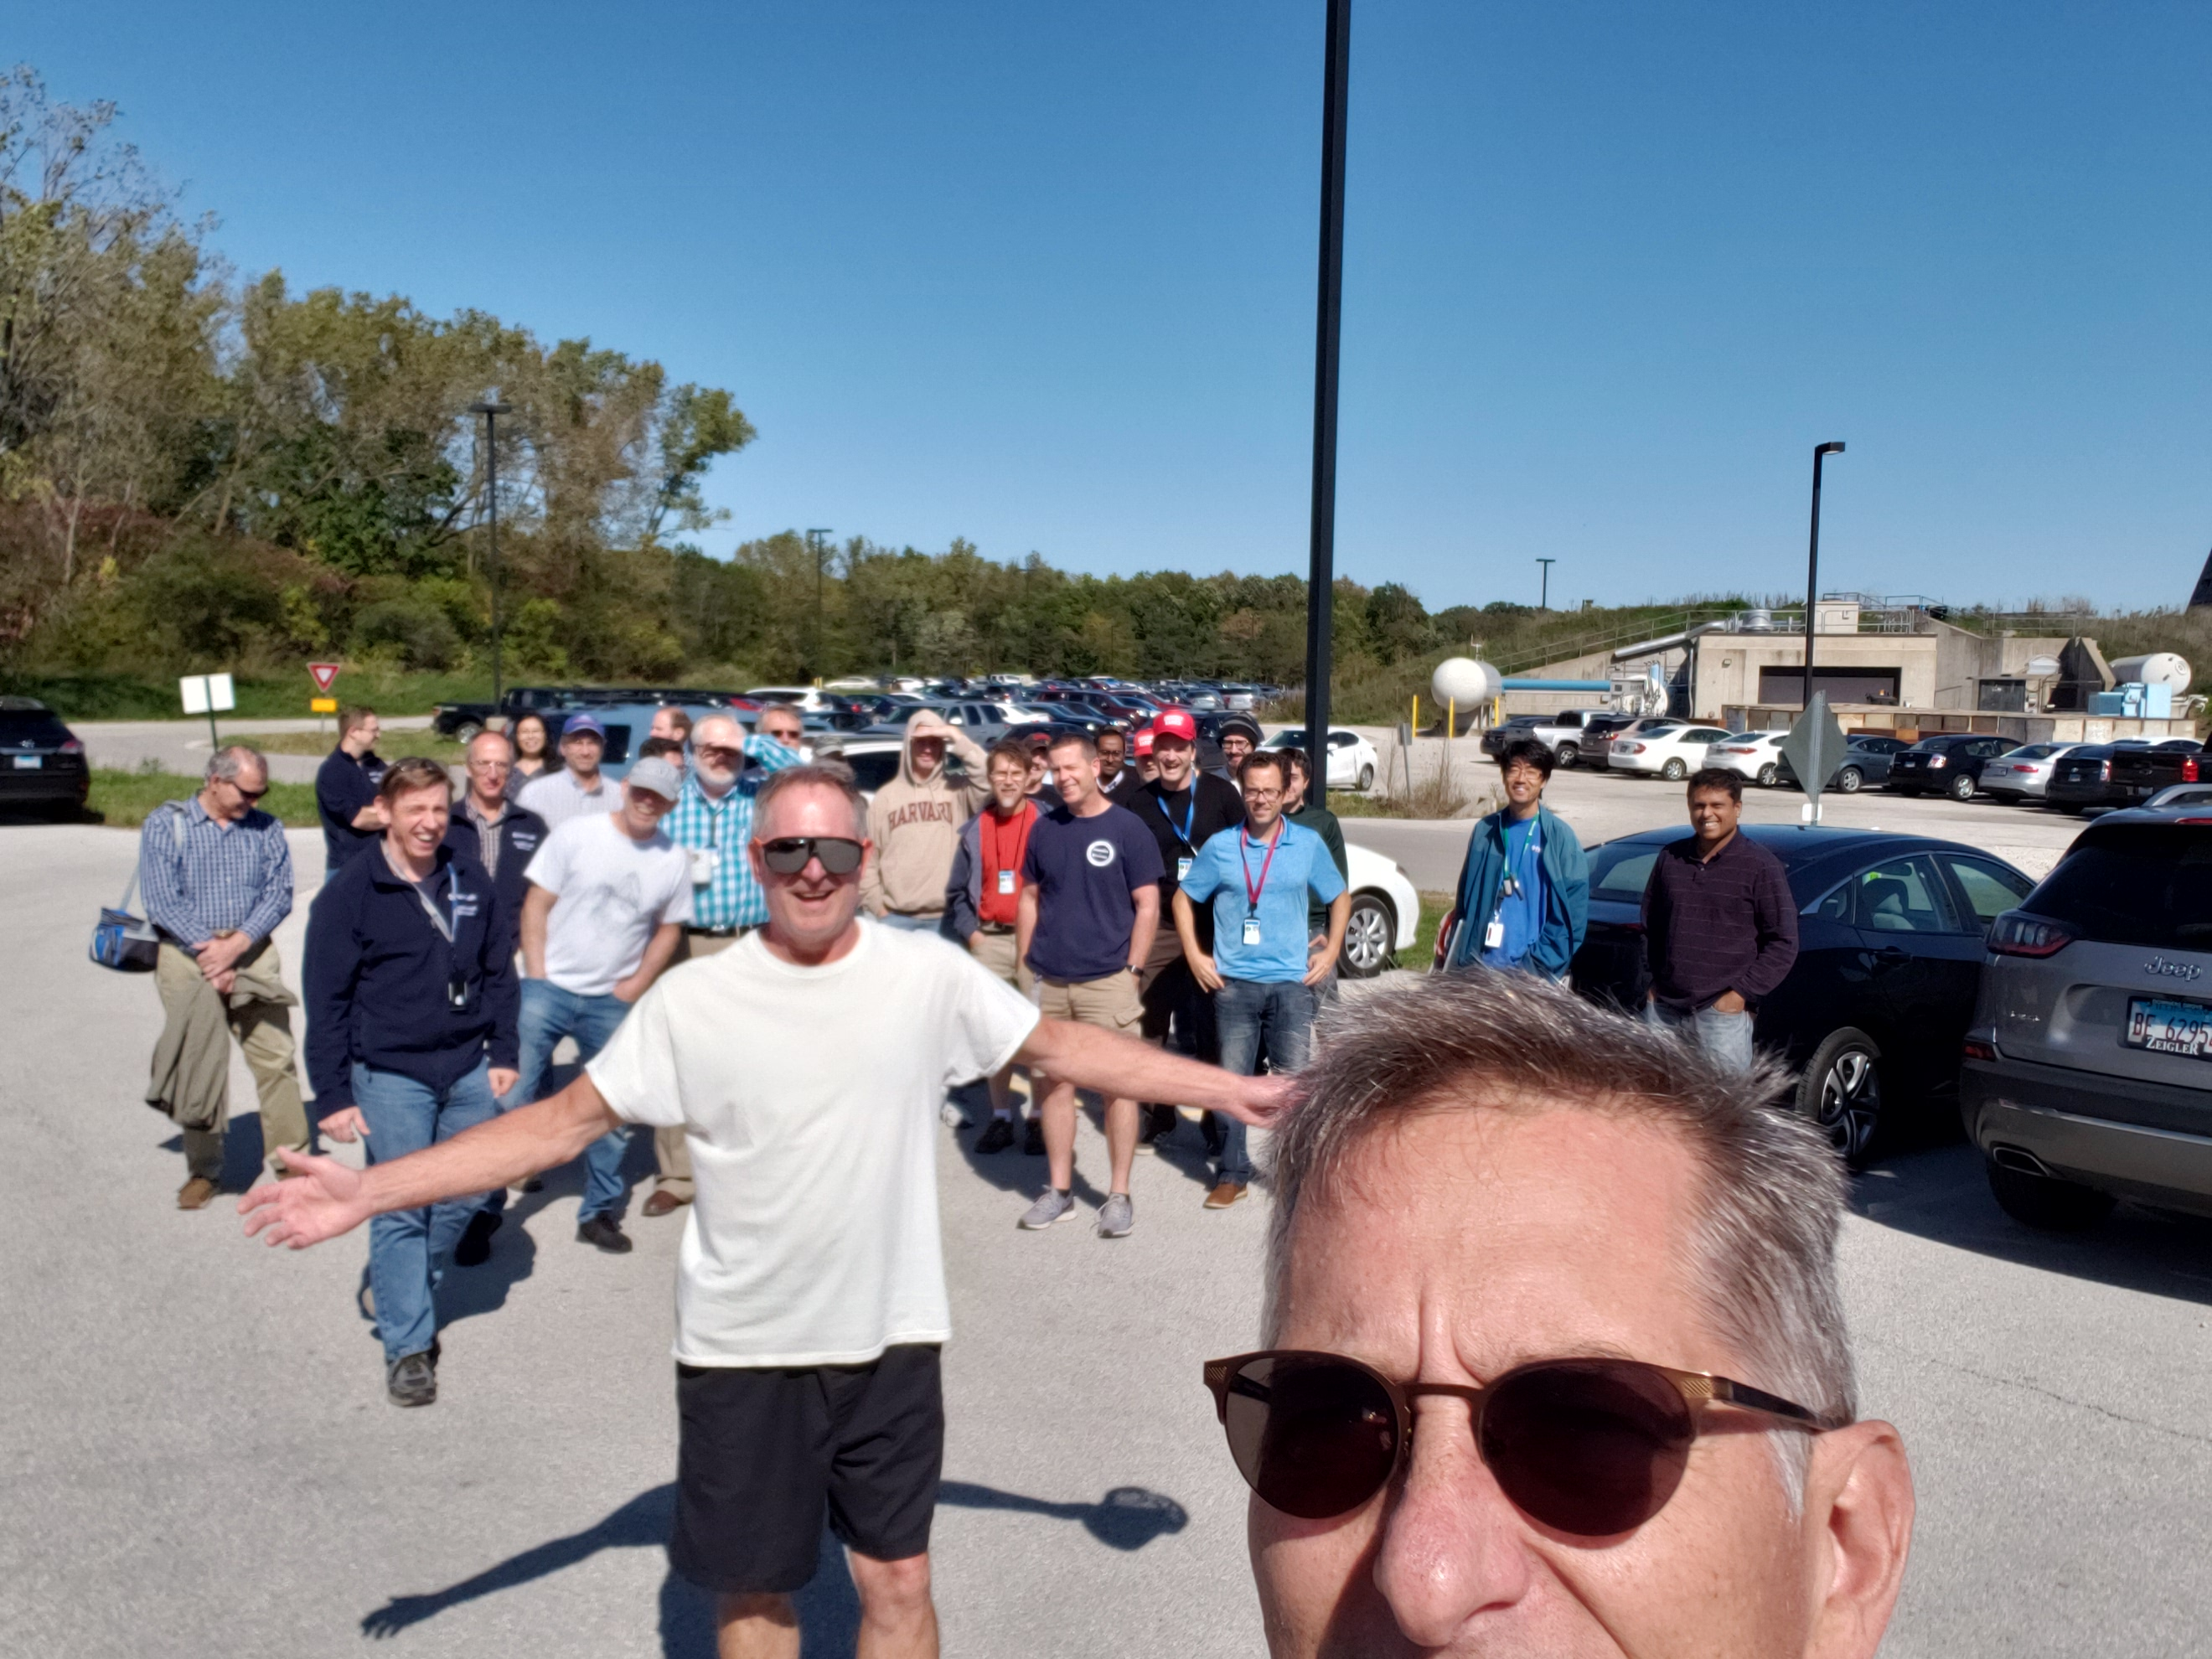 Folks who work in Booster Tower West meet in the emergency assembly area during a fire drill on a beautiful October afternoon. people, lab life Photo: Dave Pushka